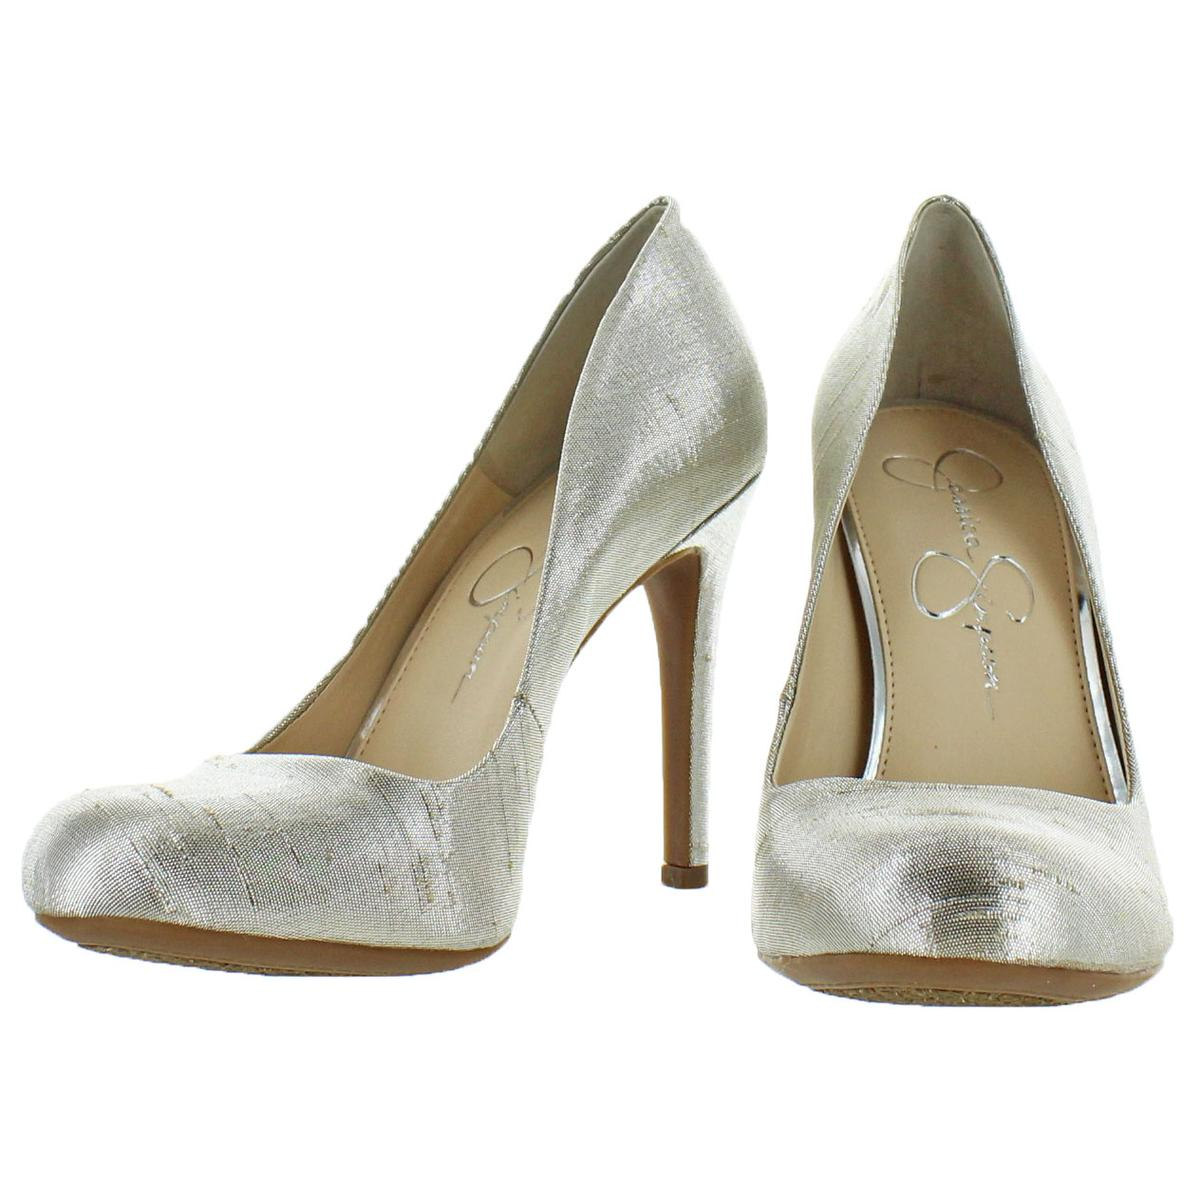 Jessica-Simpson-Women-039-s-Calie-Round-Toe-Classic-Heels-Pumps-Shoes thumbnail 15